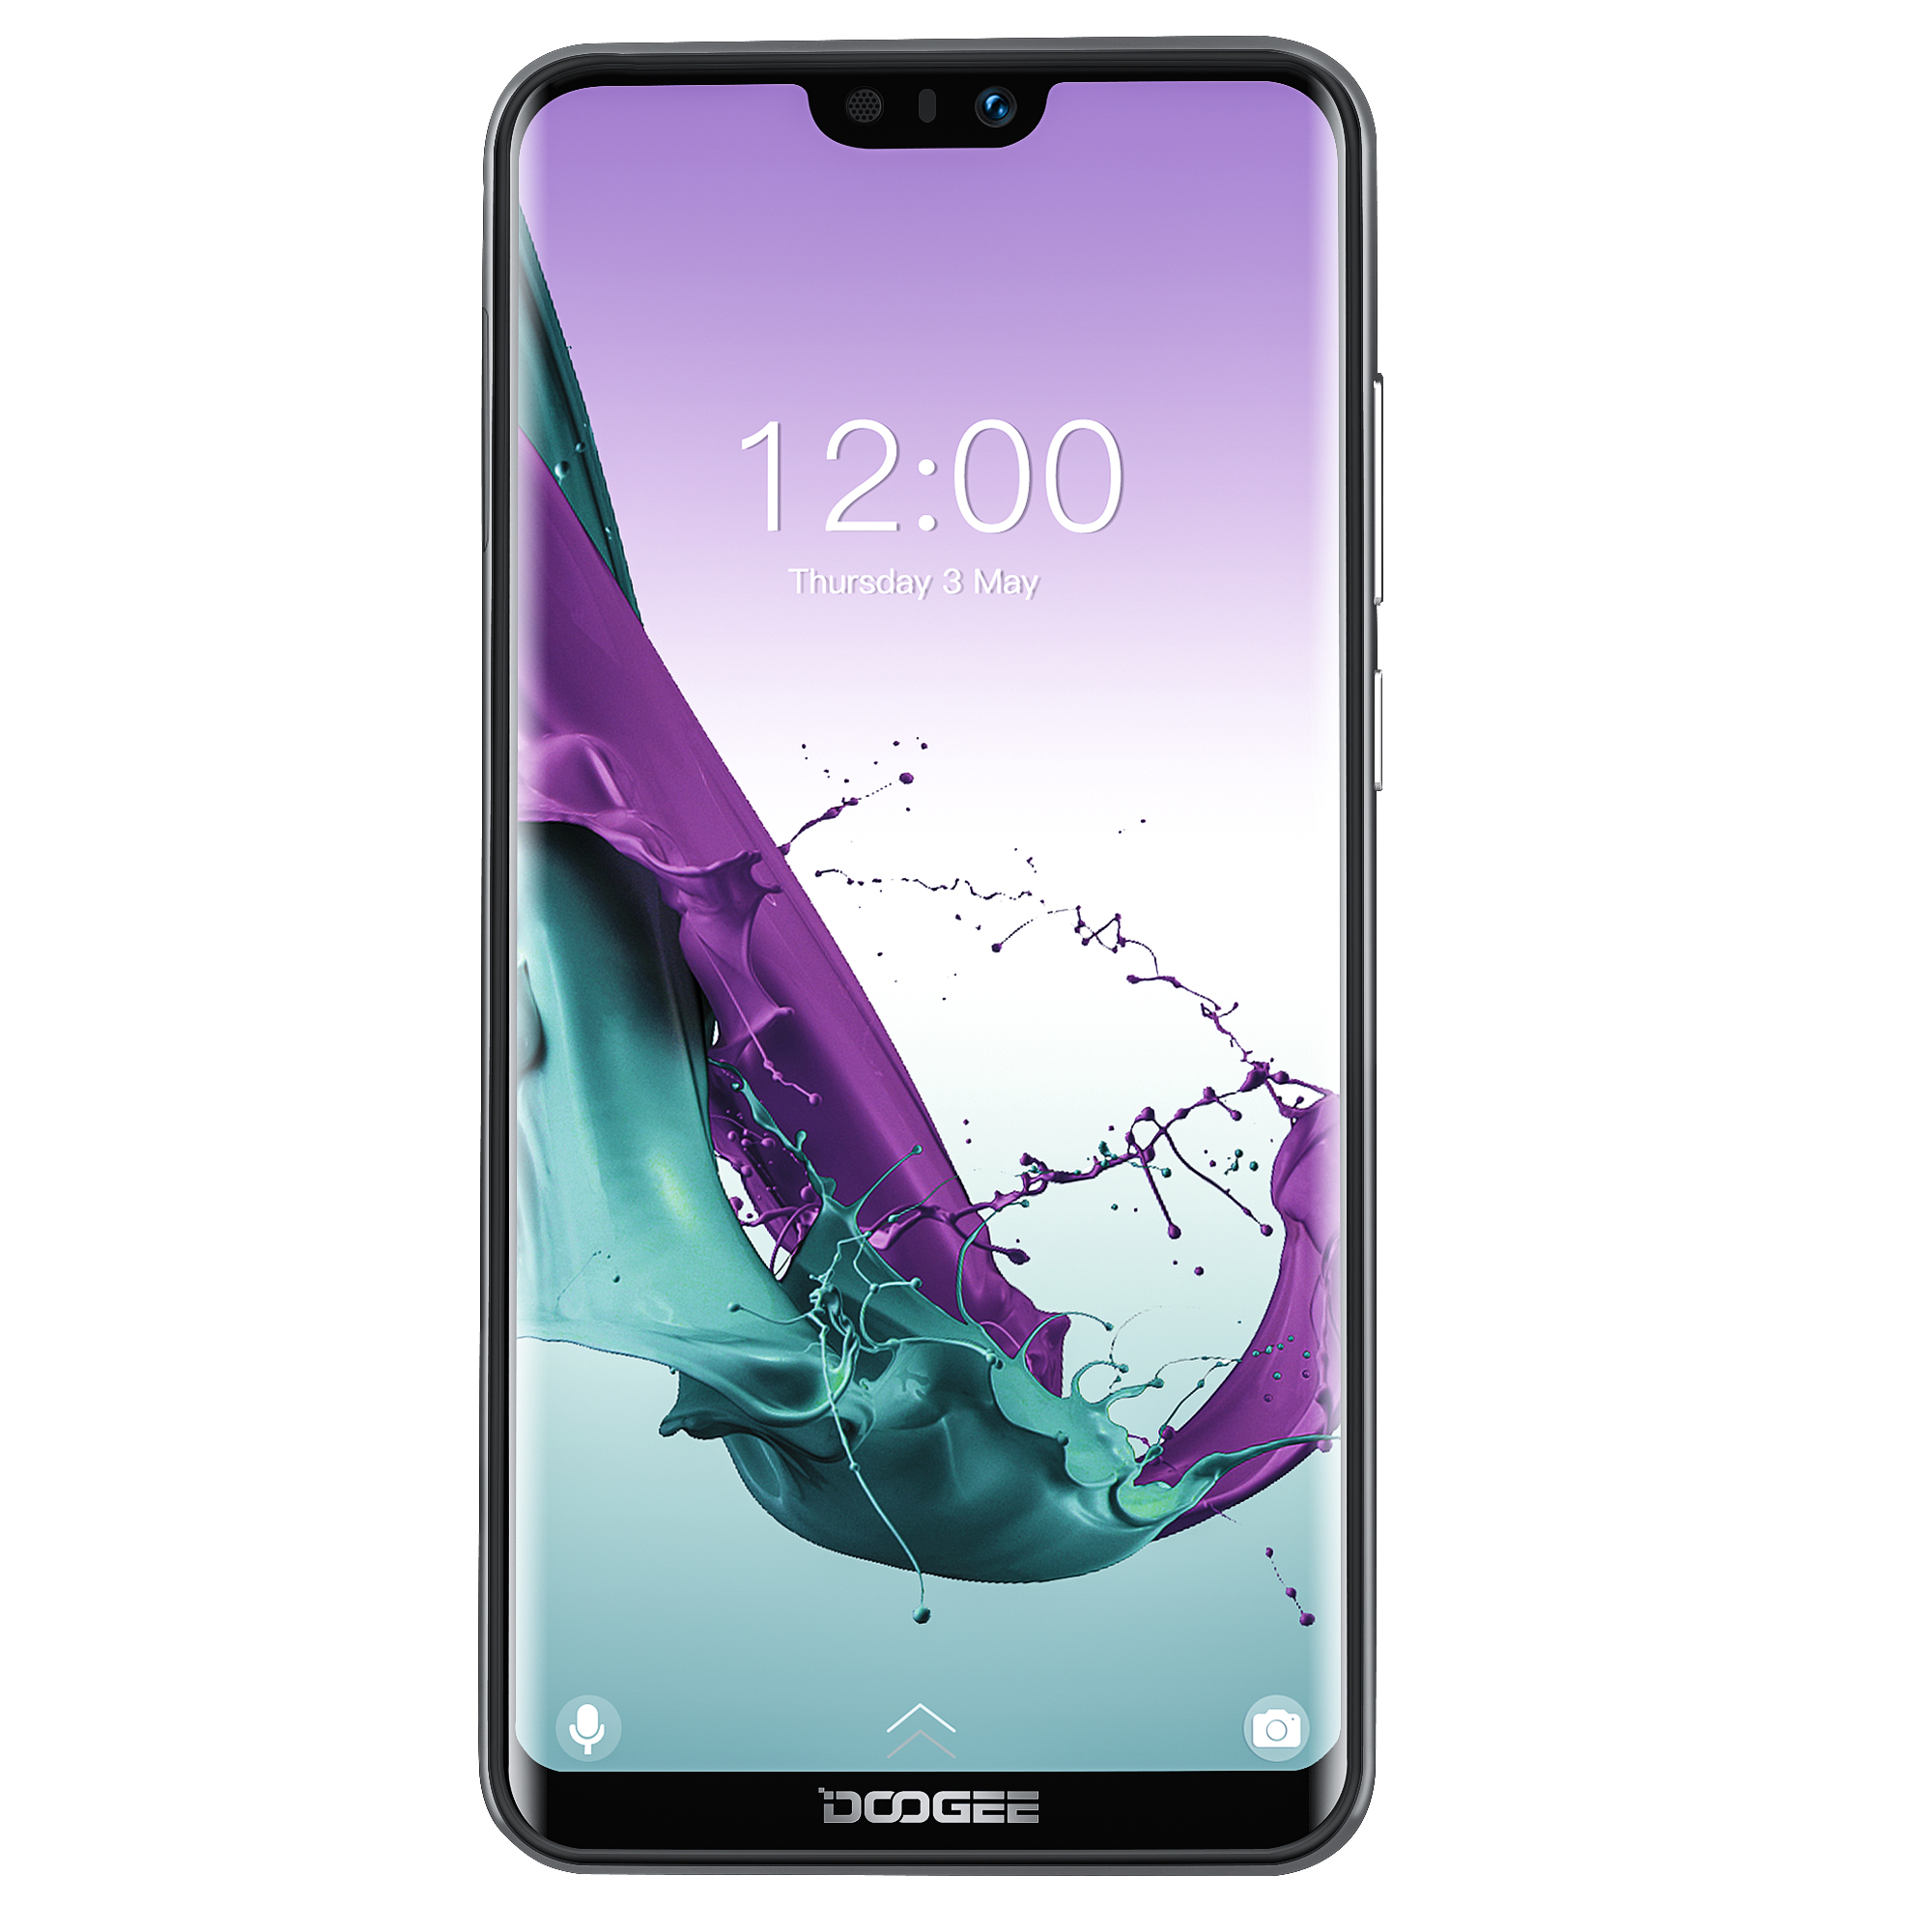 DOOGEE N10 2019 Android 8.14G LTE téléphone portable 5.84 pouces Octa Core 3 GB RAM 32 GB ROM FHD 19:9 affichage 16.0MP caméra frontale 3360 mAh